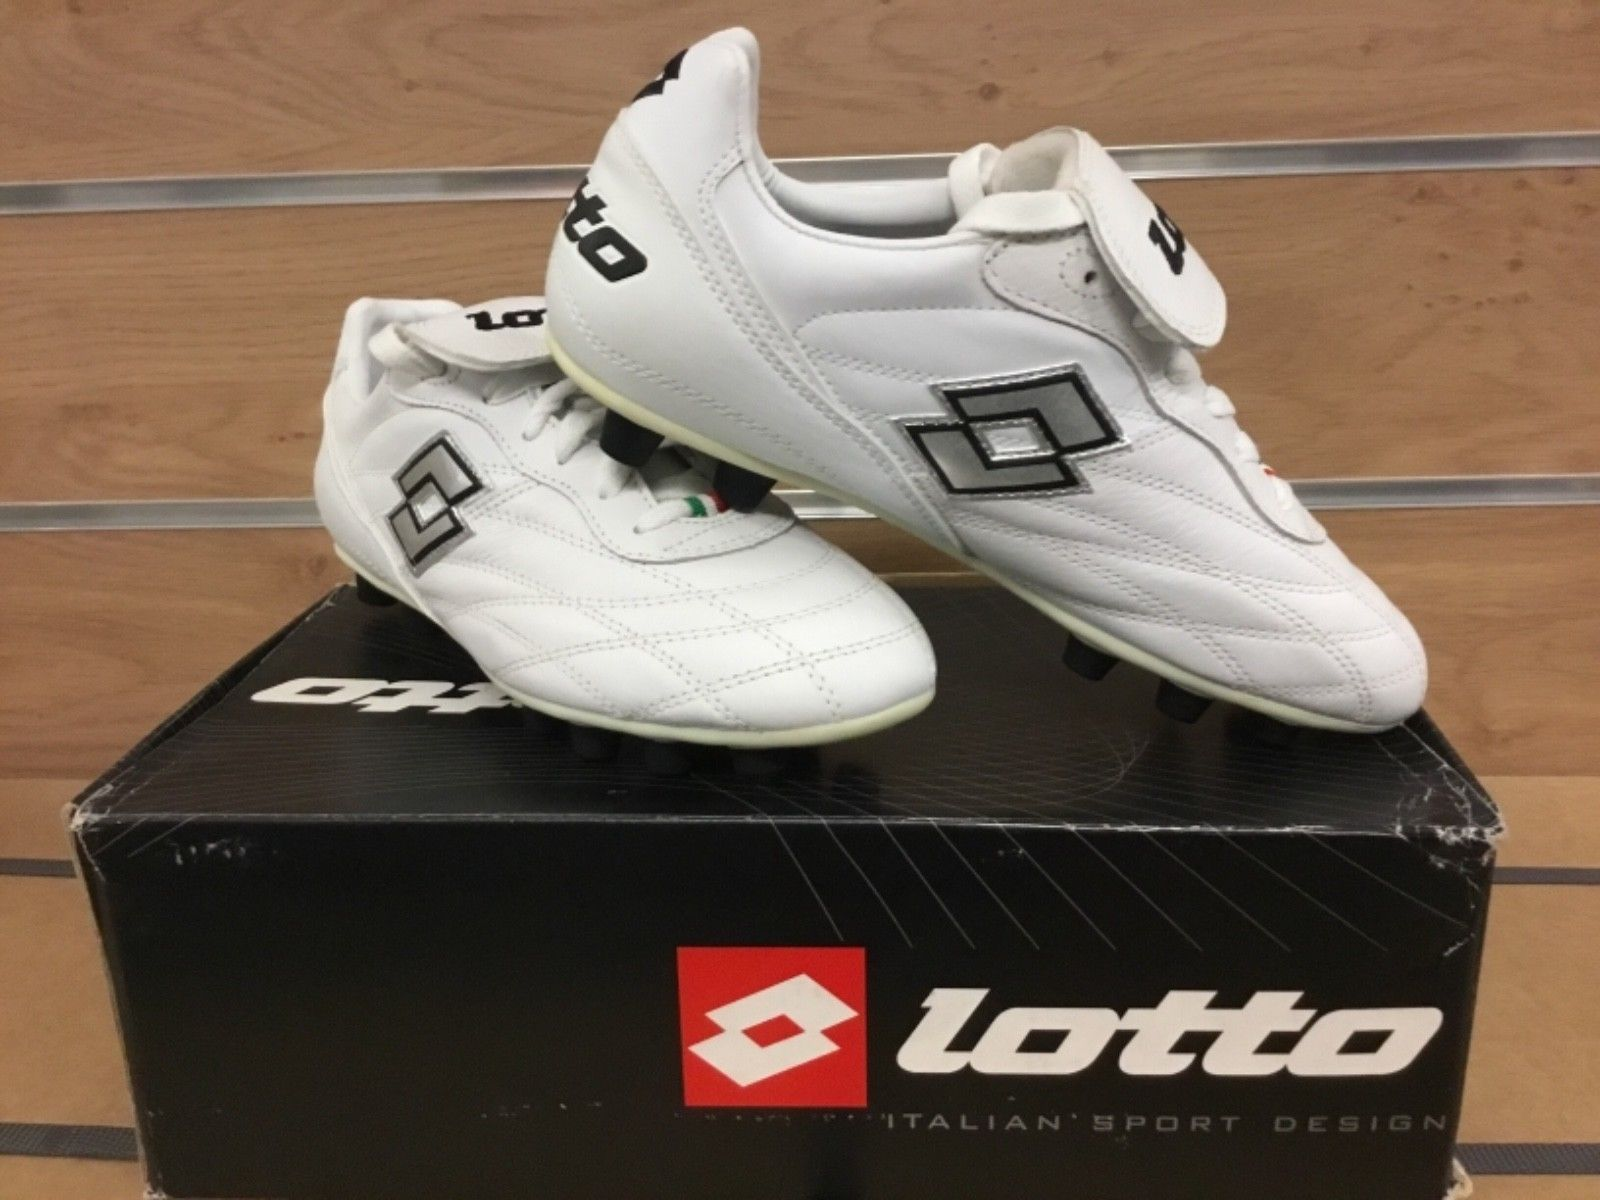 Lotto-Soccer-Cleats-11032